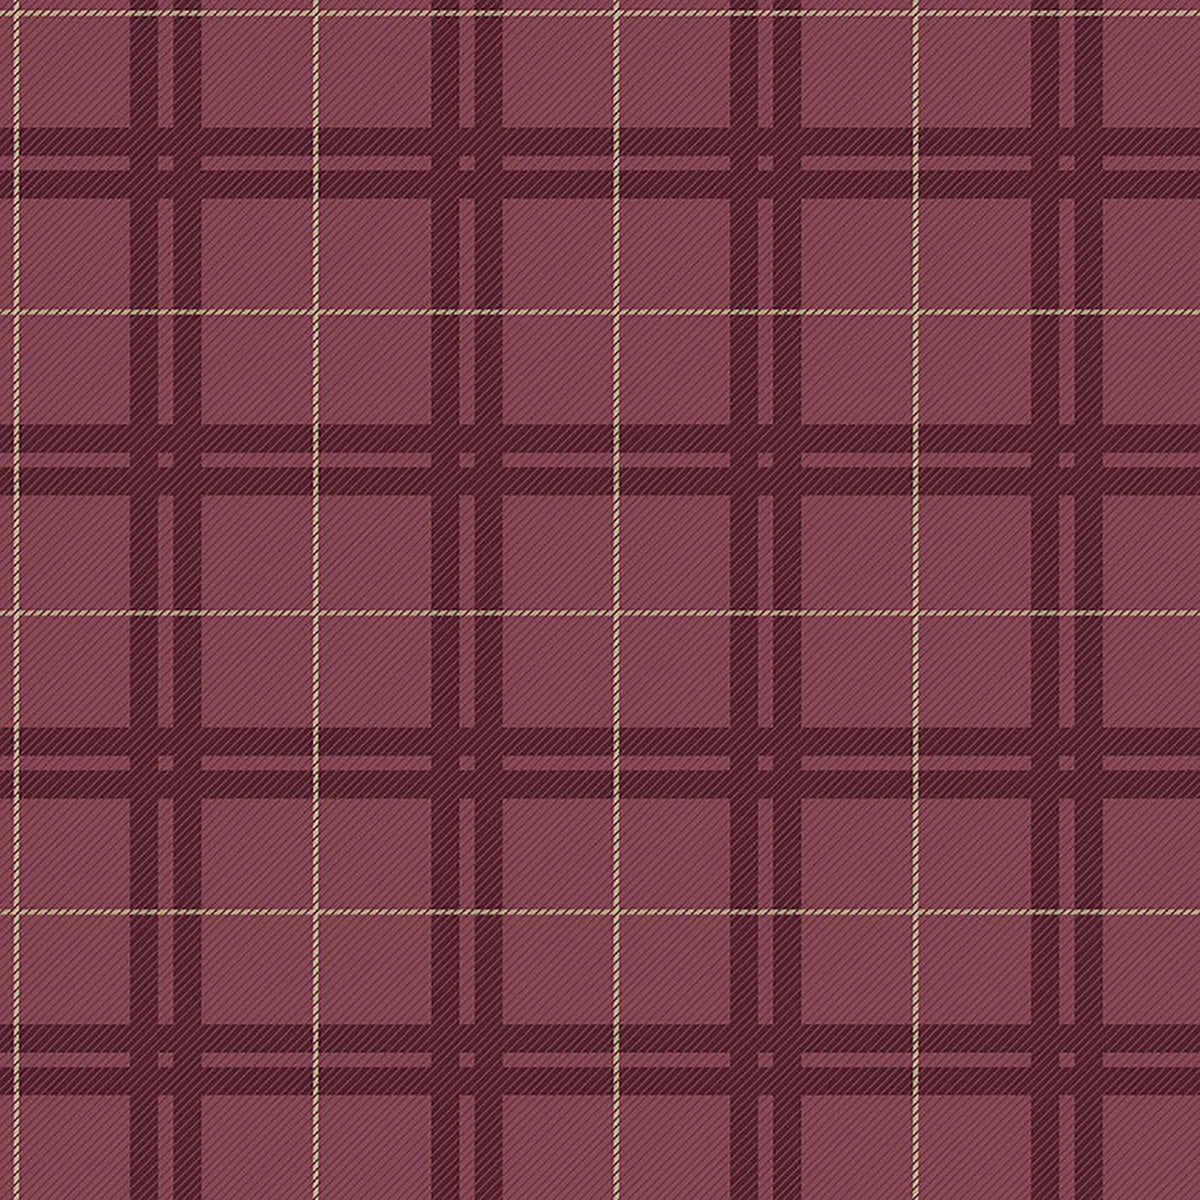 Hilary Red Plaid Wallpaper